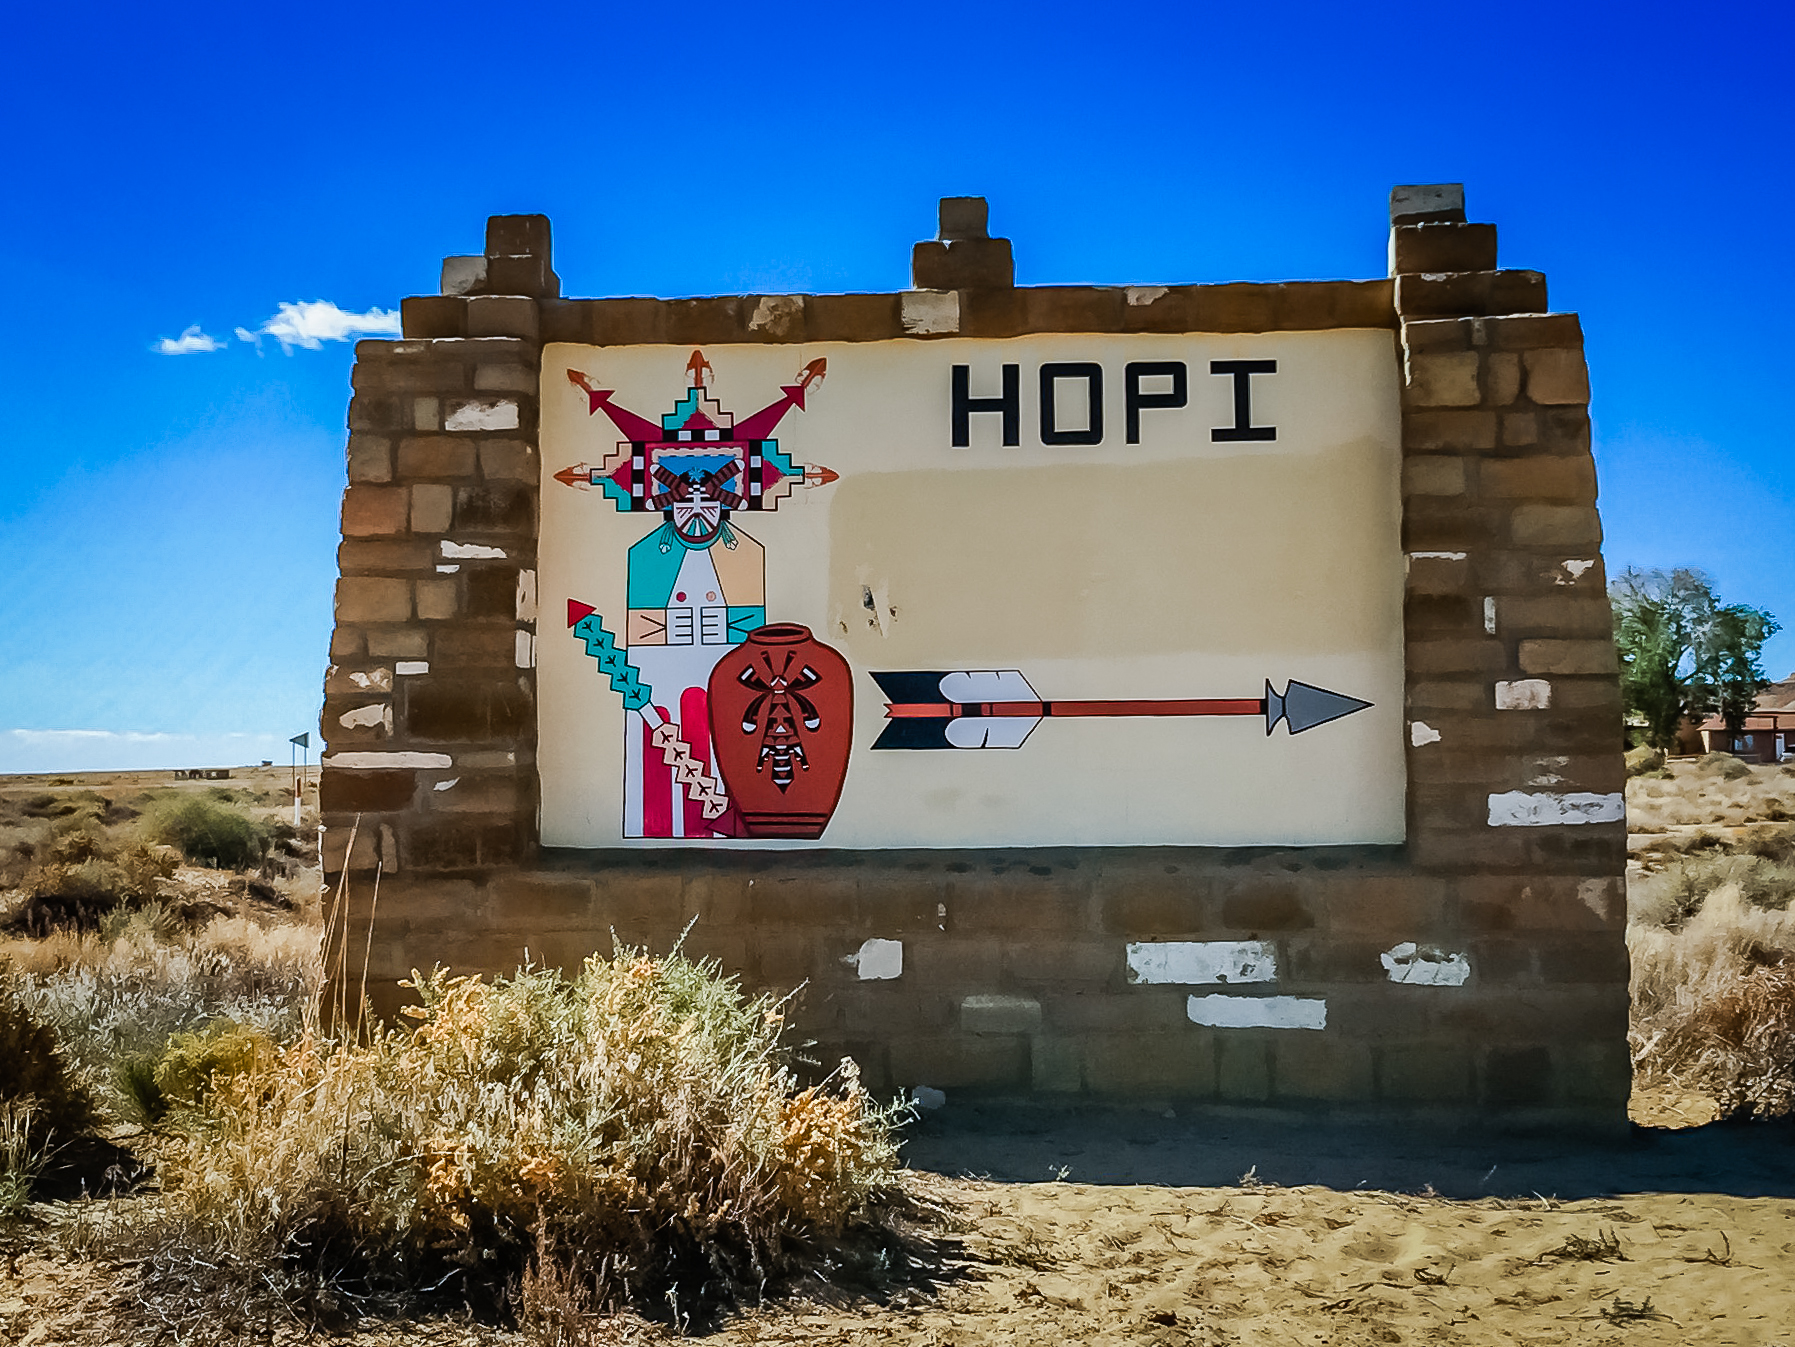 Hopi Tribe seeks support for long-overdue land transfer